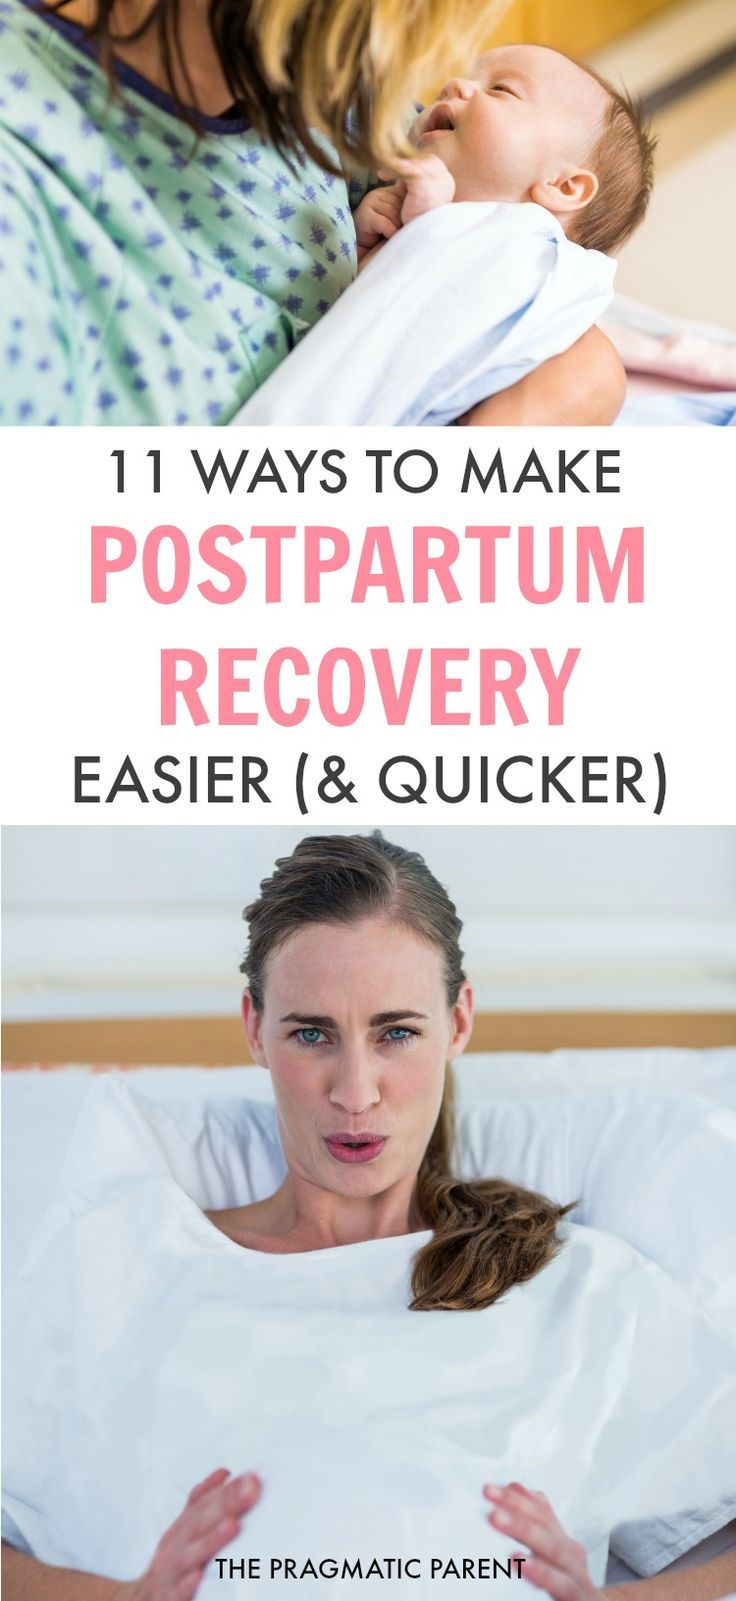 Labor is a grueling process and postpartum recovery can be a real pain. Proper postpartum care is necessary for healing, and ultimately makes your postpartum recovery easier and quicker. 11 ways to make postpartum recovery easier and speedier. // The Pragmatic Parent